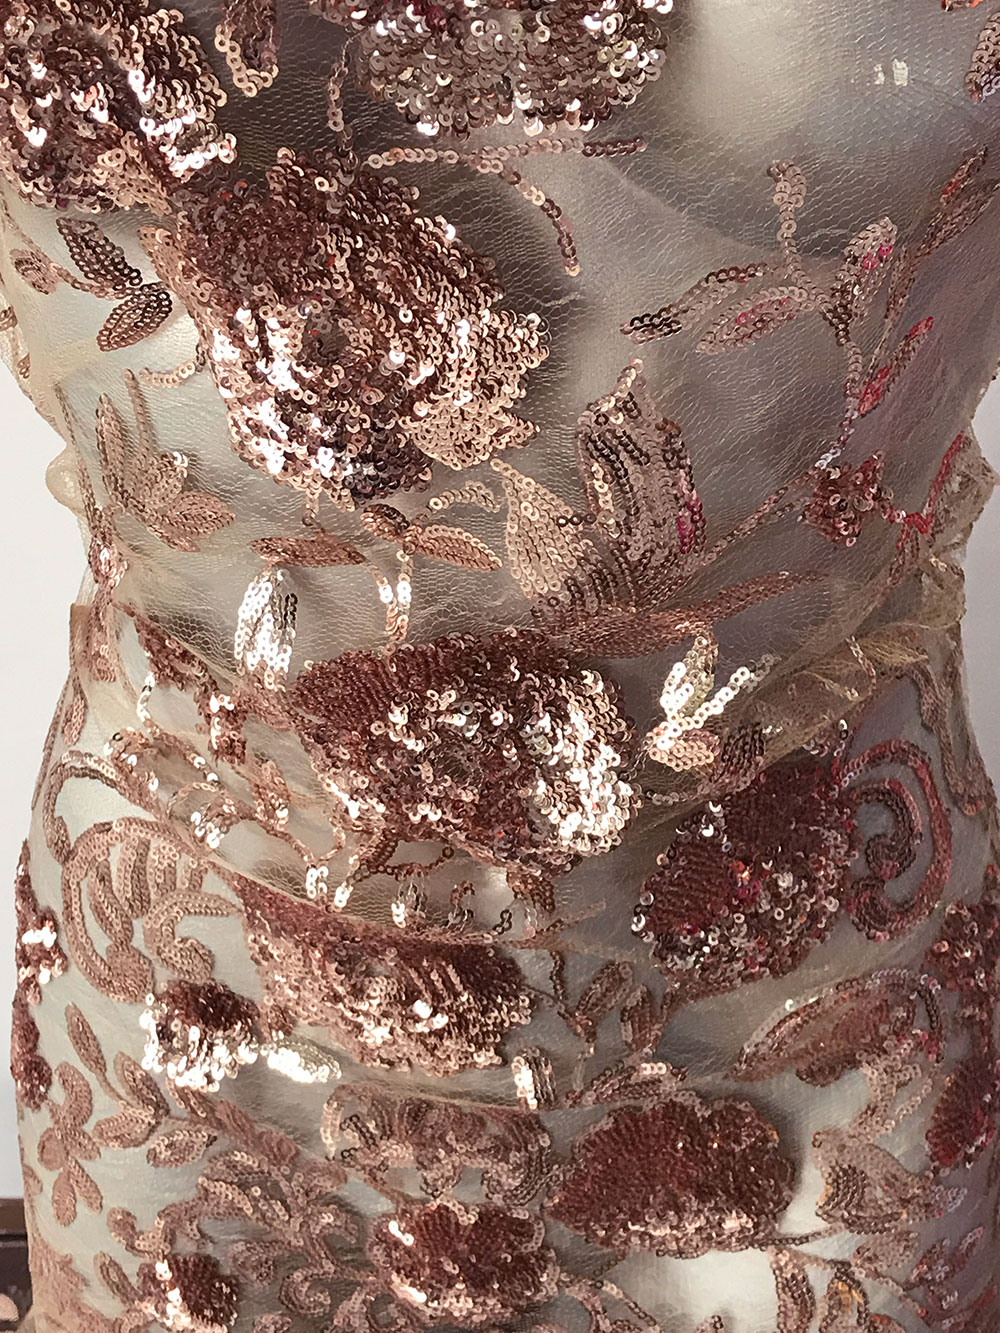 ROSE GOLD Sparkly Bling Sequins Net Material Cocktail Dress Evening Party Lace